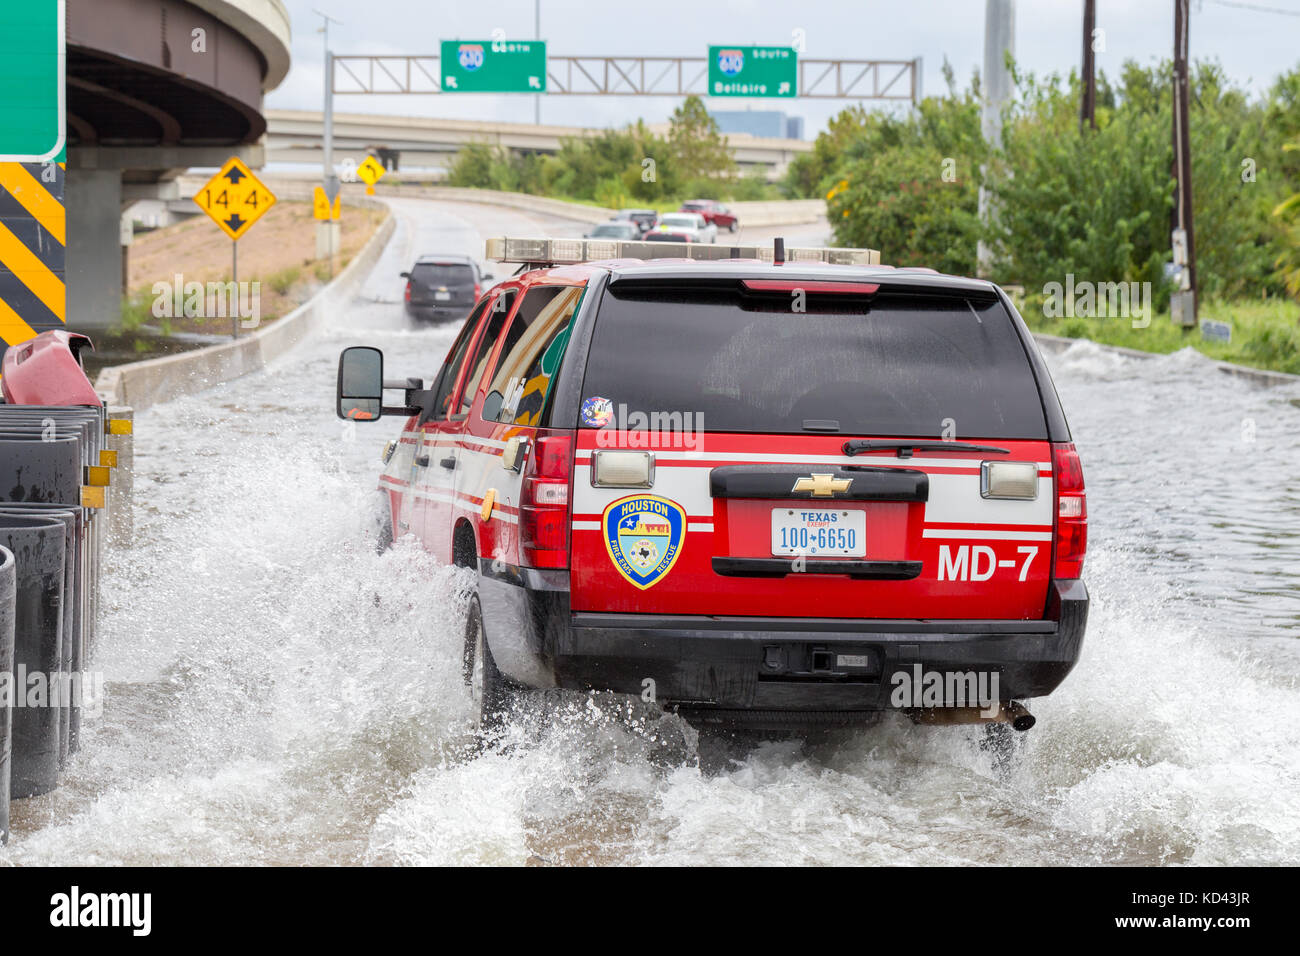 A City Of Houston Emergency Vehicle Pushes Through Floodwaters From  Hurricane Harvey. Heavy Rains Caused